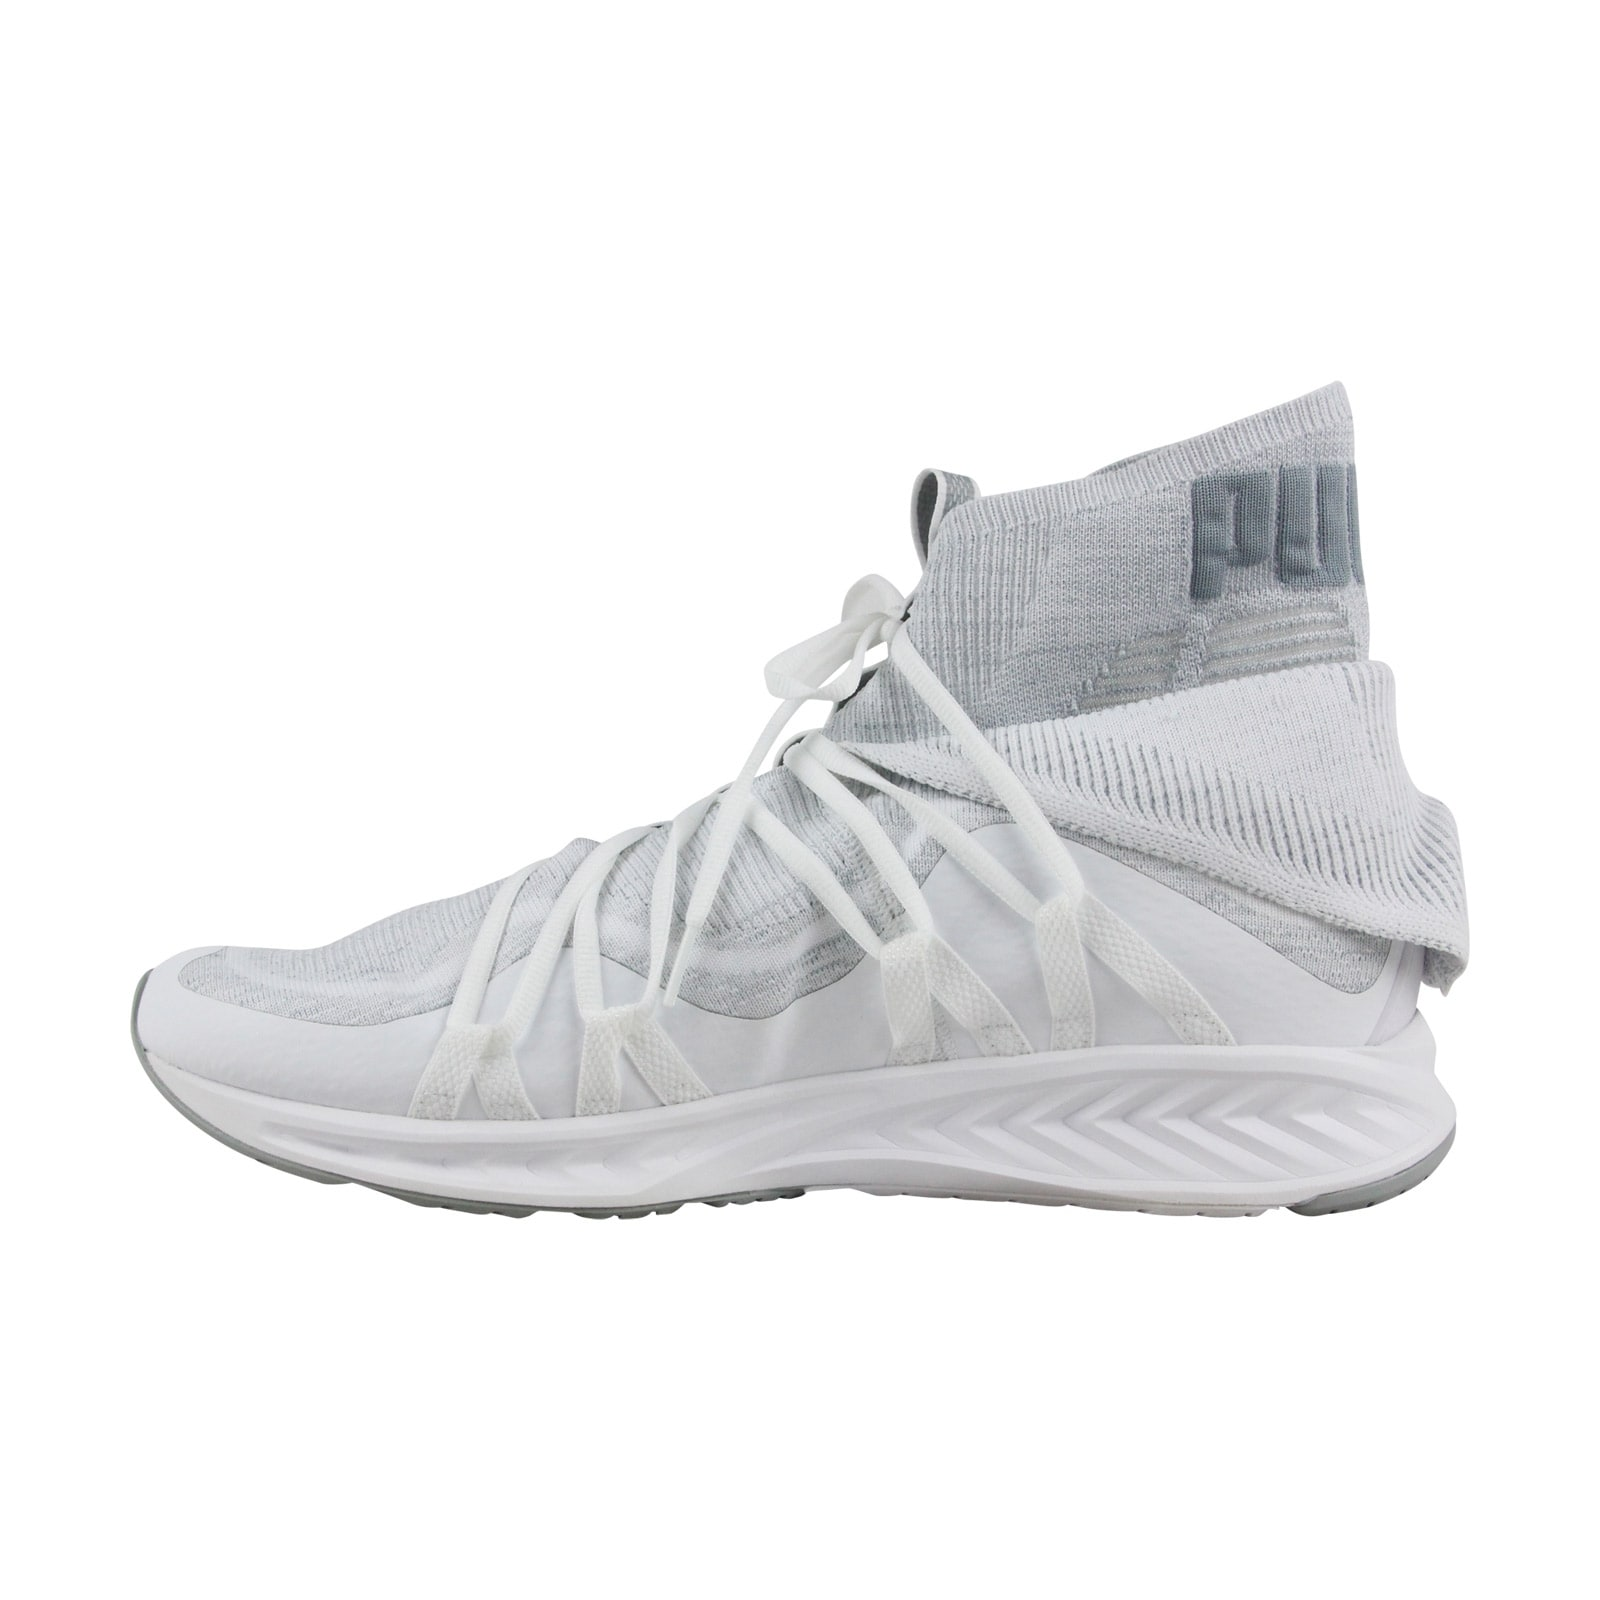 2af8d0ad9fd Shop Puma Ignite Evoknit Fold Mens White Textile Athletic Lace Up Training  Shoes - Free Shipping On Orders Over  45 - Overstock - 21729279